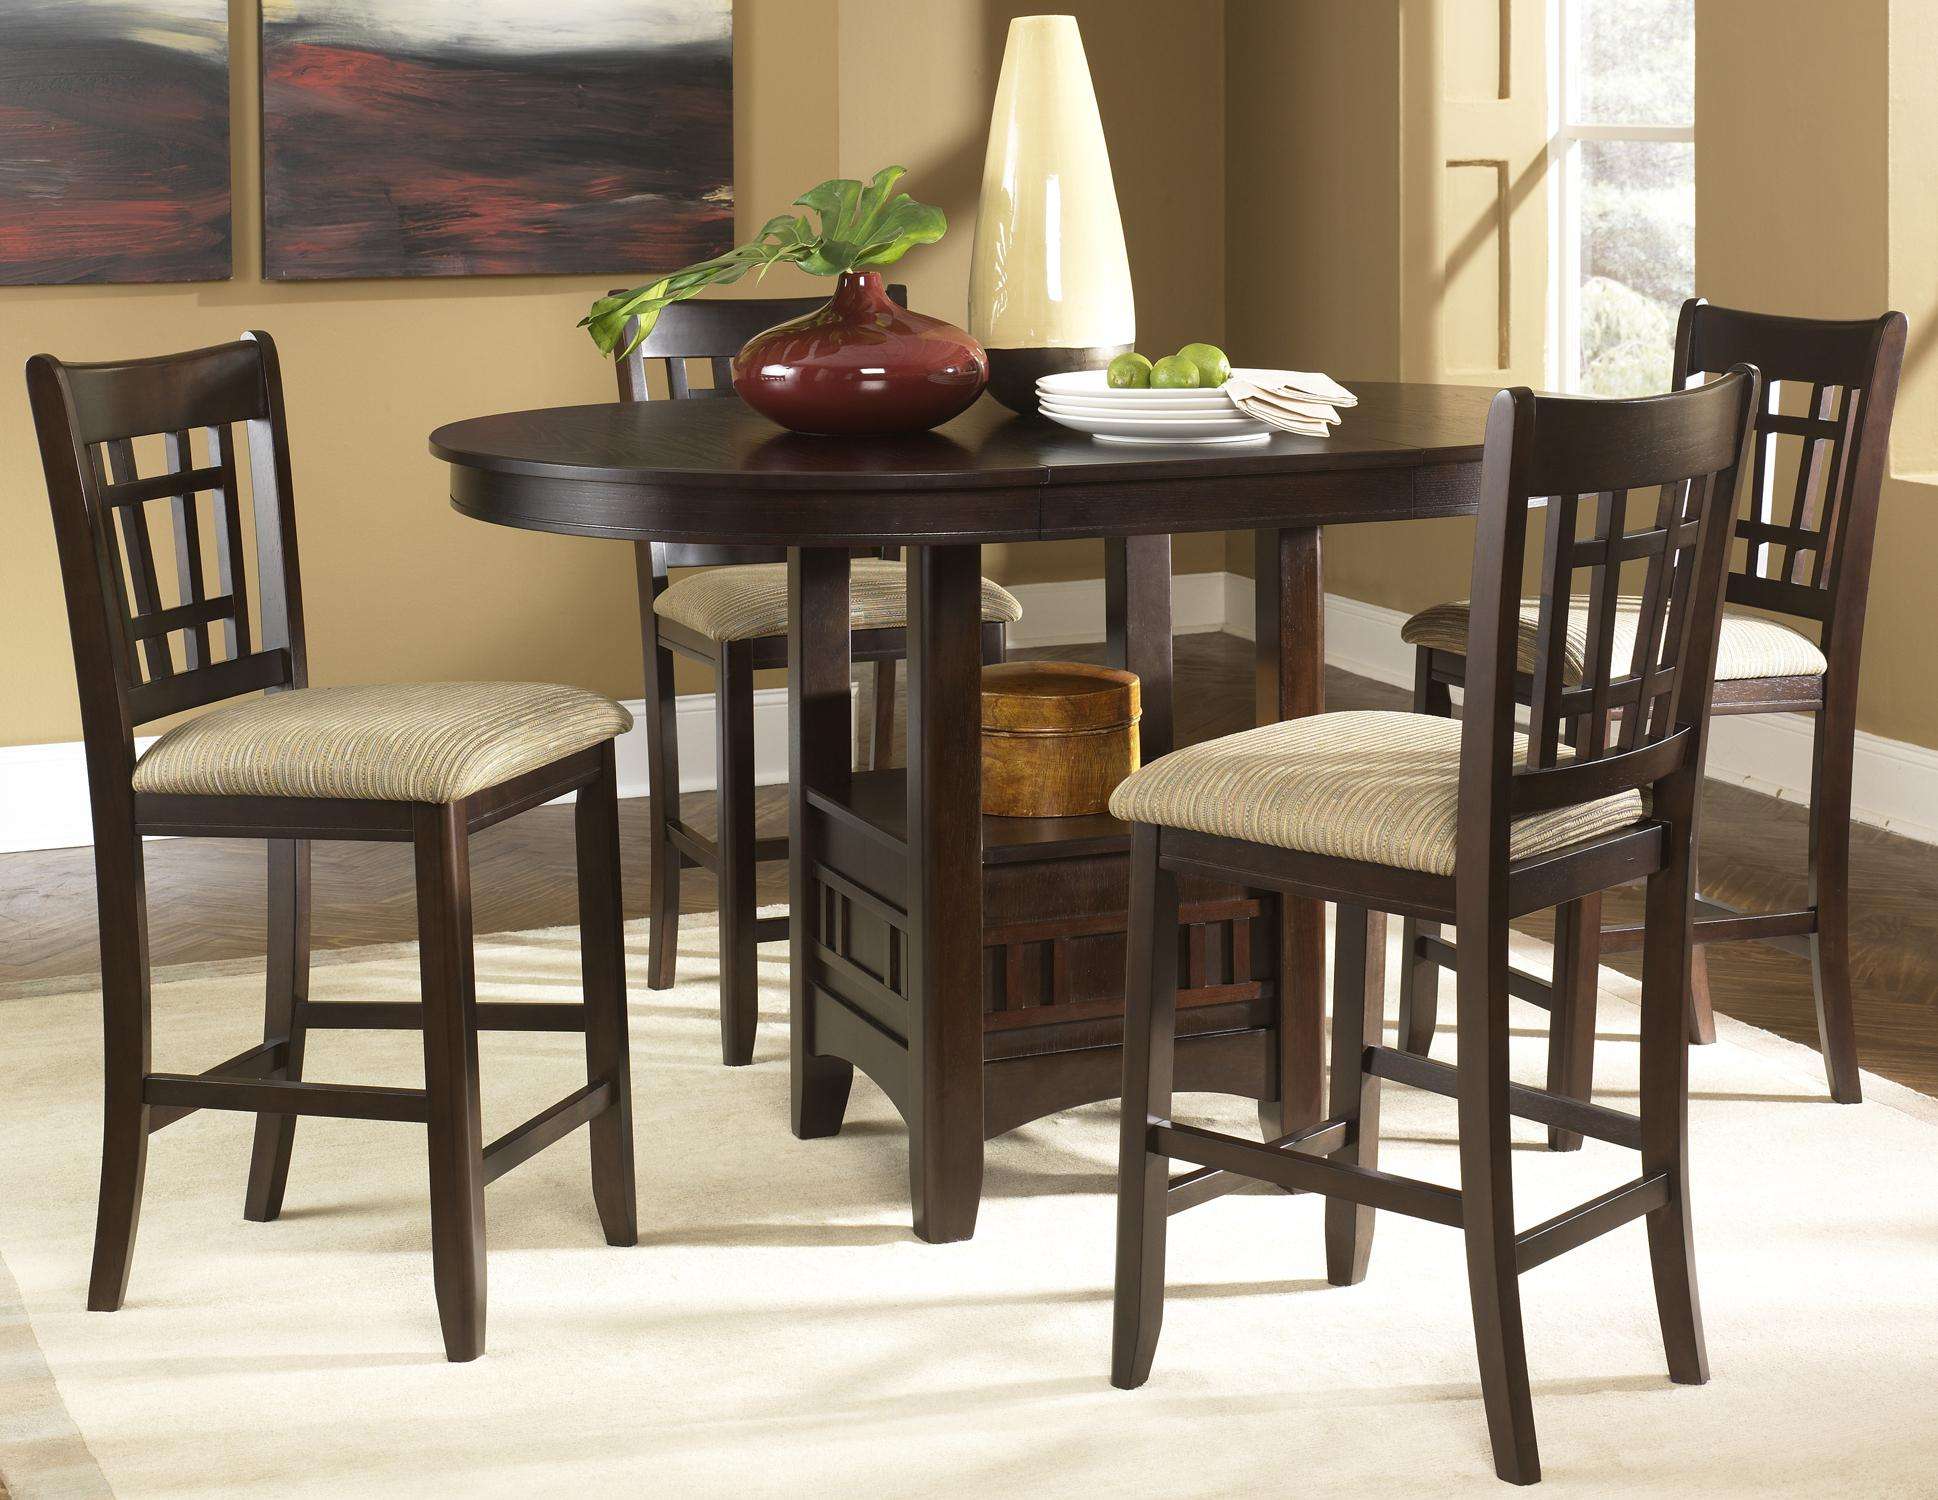 Pub Tables And Chairs Oval Pub Table And 24 Inch Upholstered Bar Stool Set By